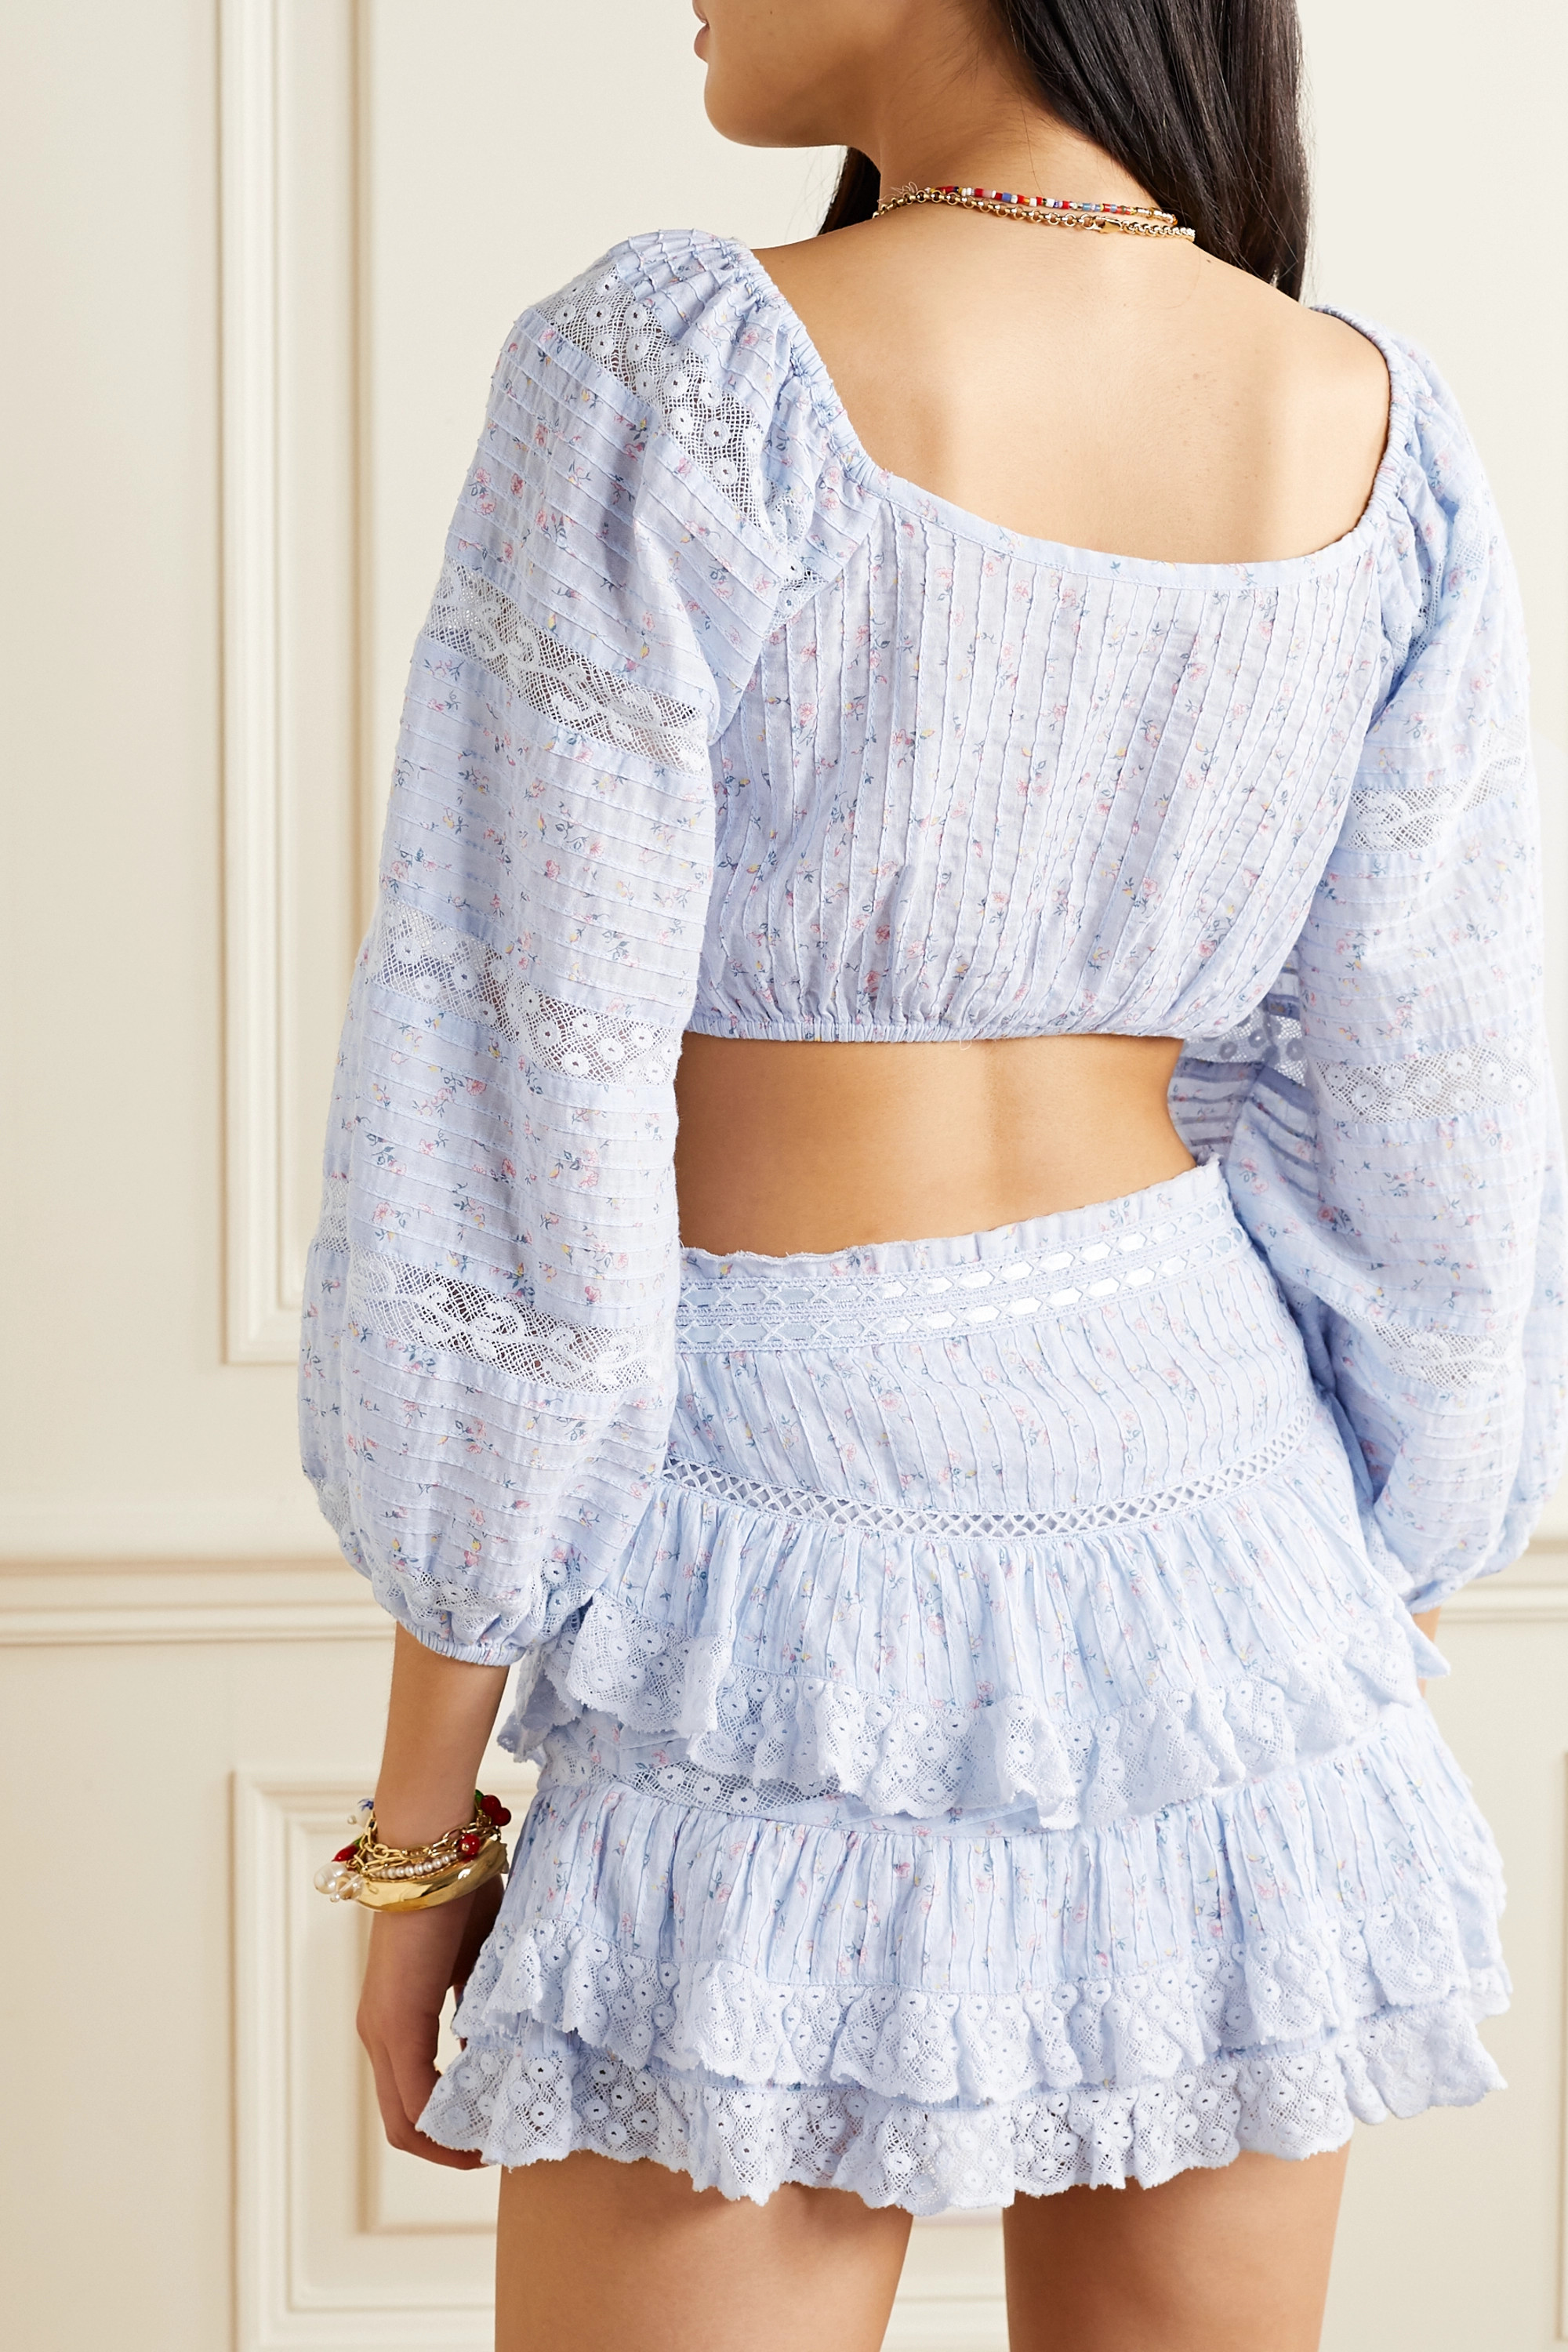 LoveShackFancy Albertina cropped lace-trimmed floral-print cotton-voile top